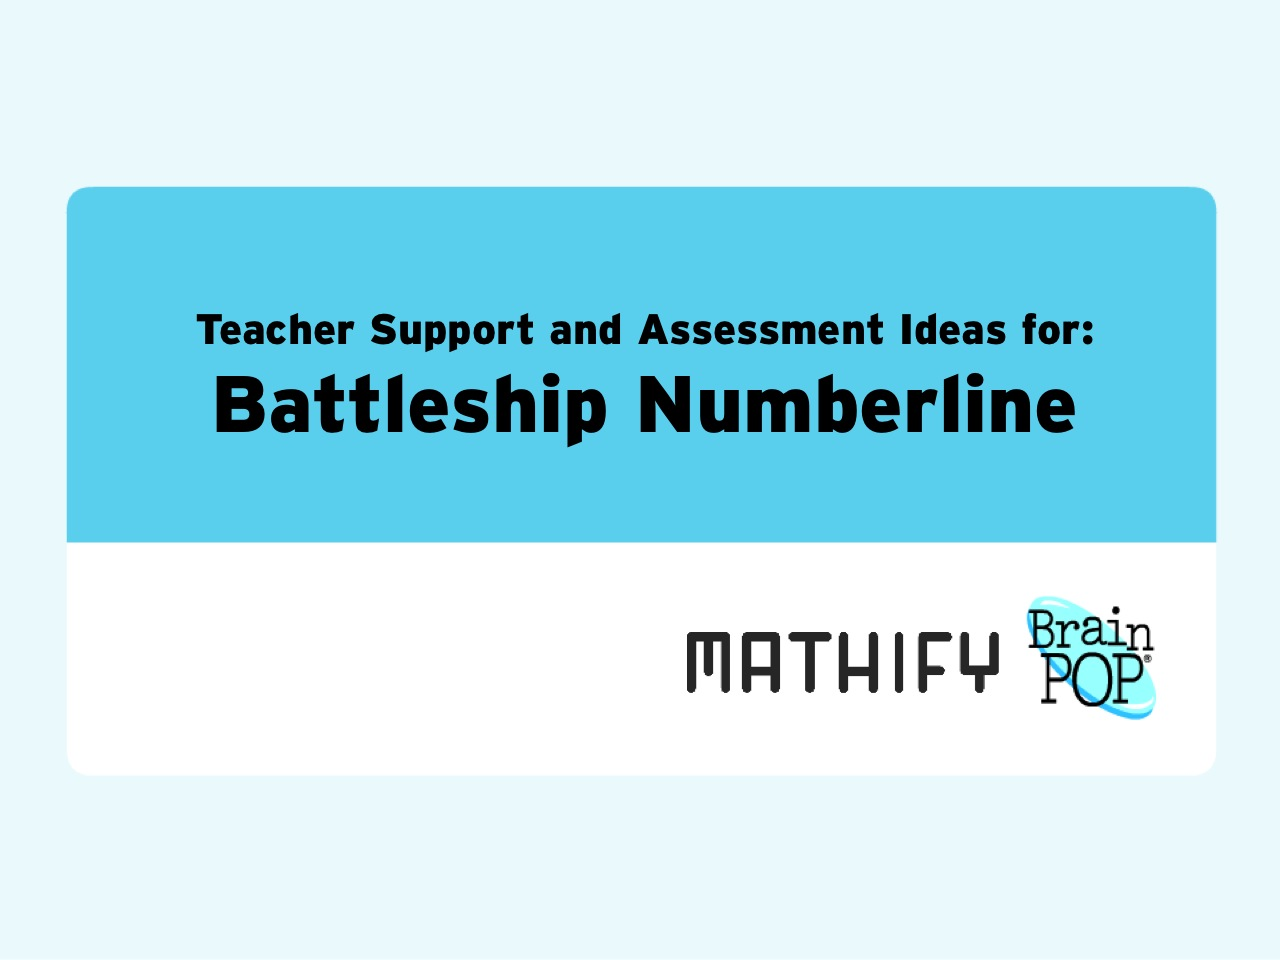 Battleship Numberline Math Game: Teacher Support Materials and Assessment